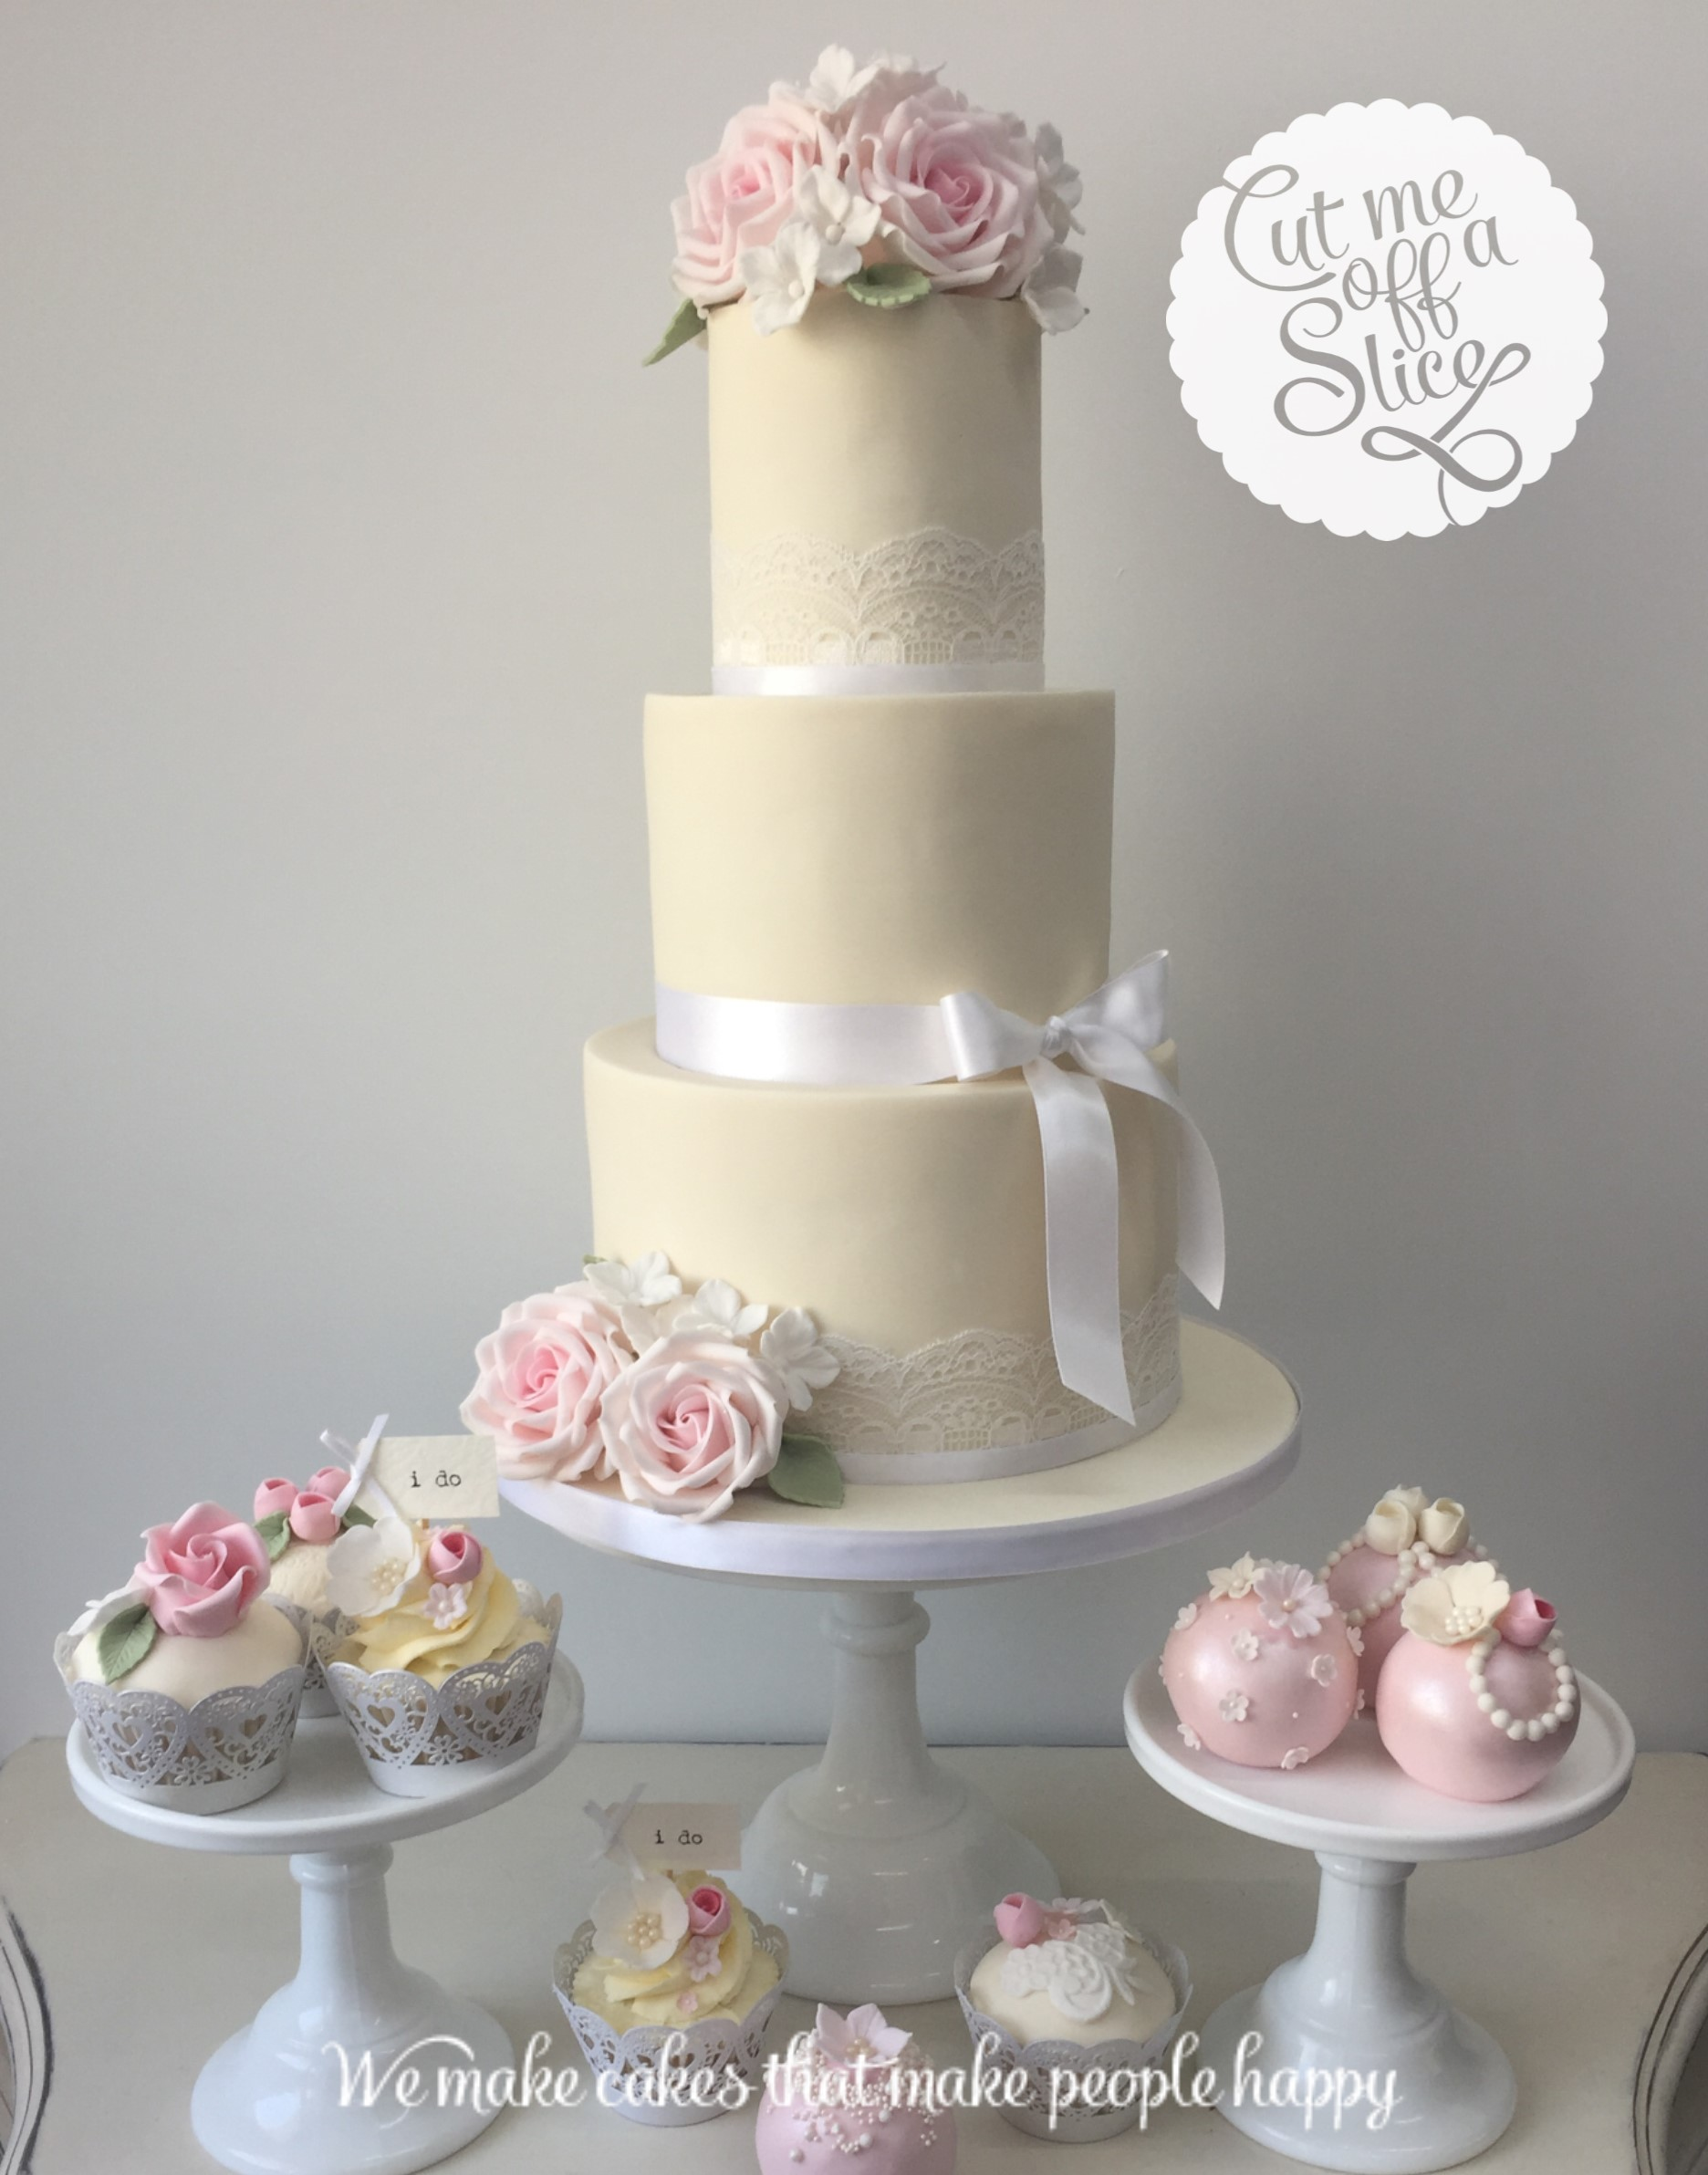 Cake Tables - Wedding Cakes , Cut me off a slice, the cake makers ...